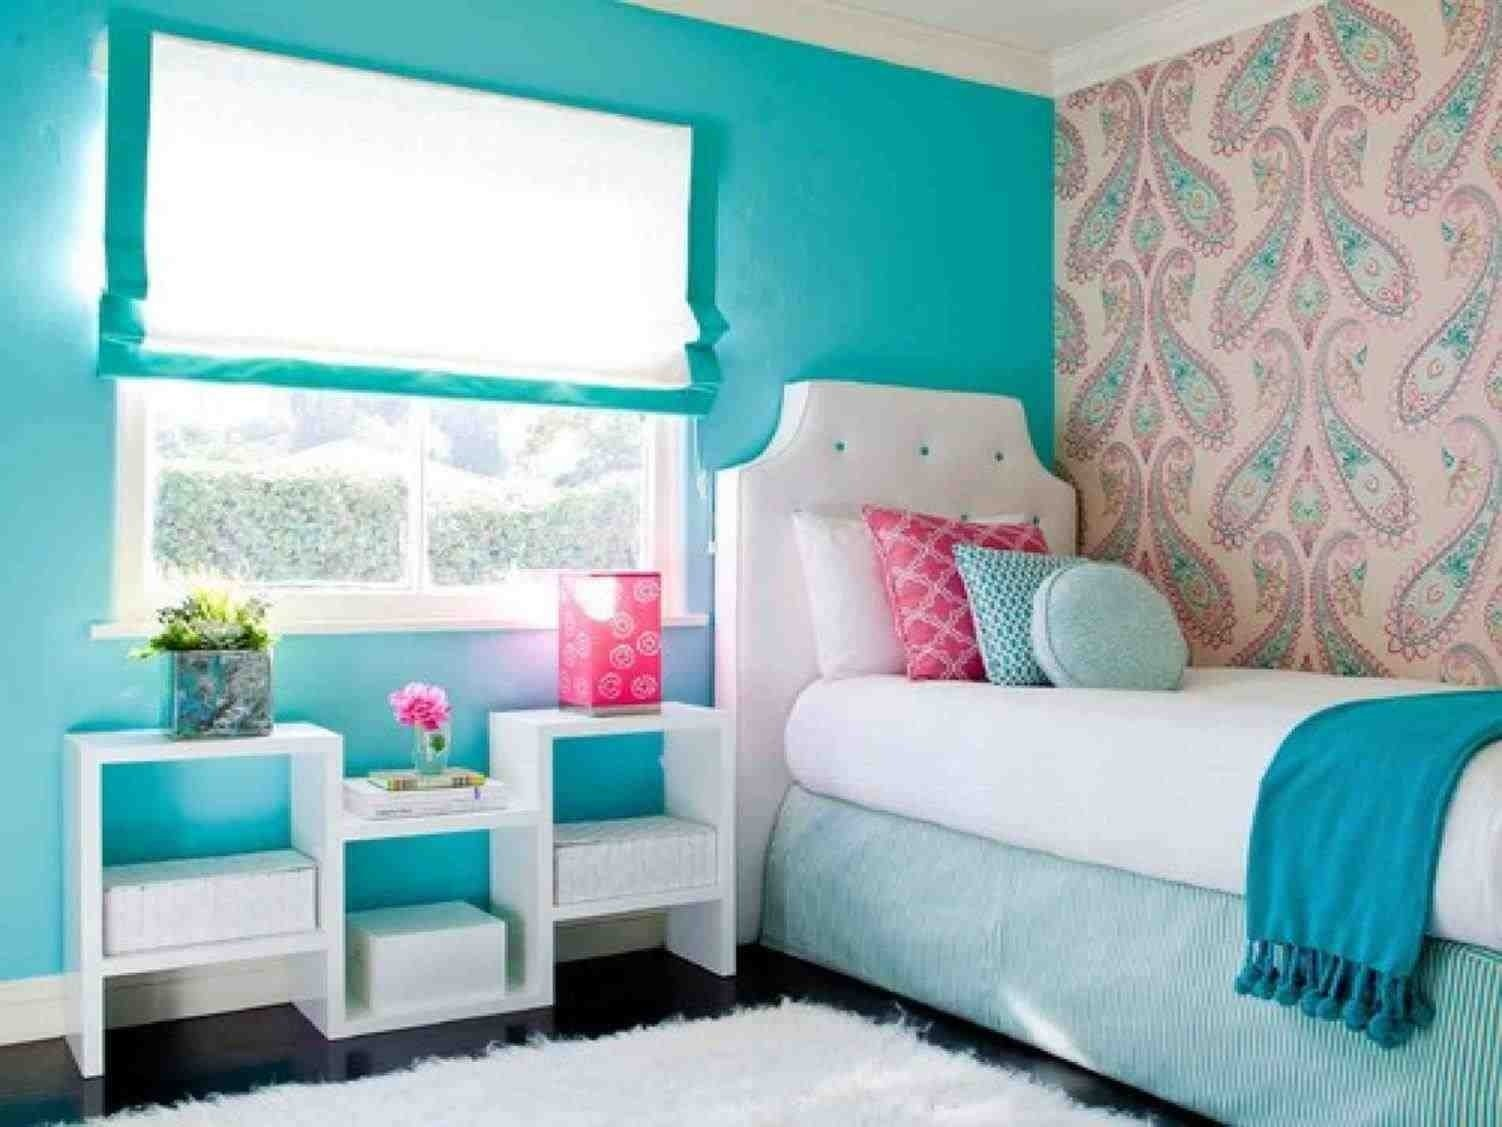 10 Great Teenage Girl Small Bedroom Ideas the images collection of glass cute design small bedroom girl ideas 2020